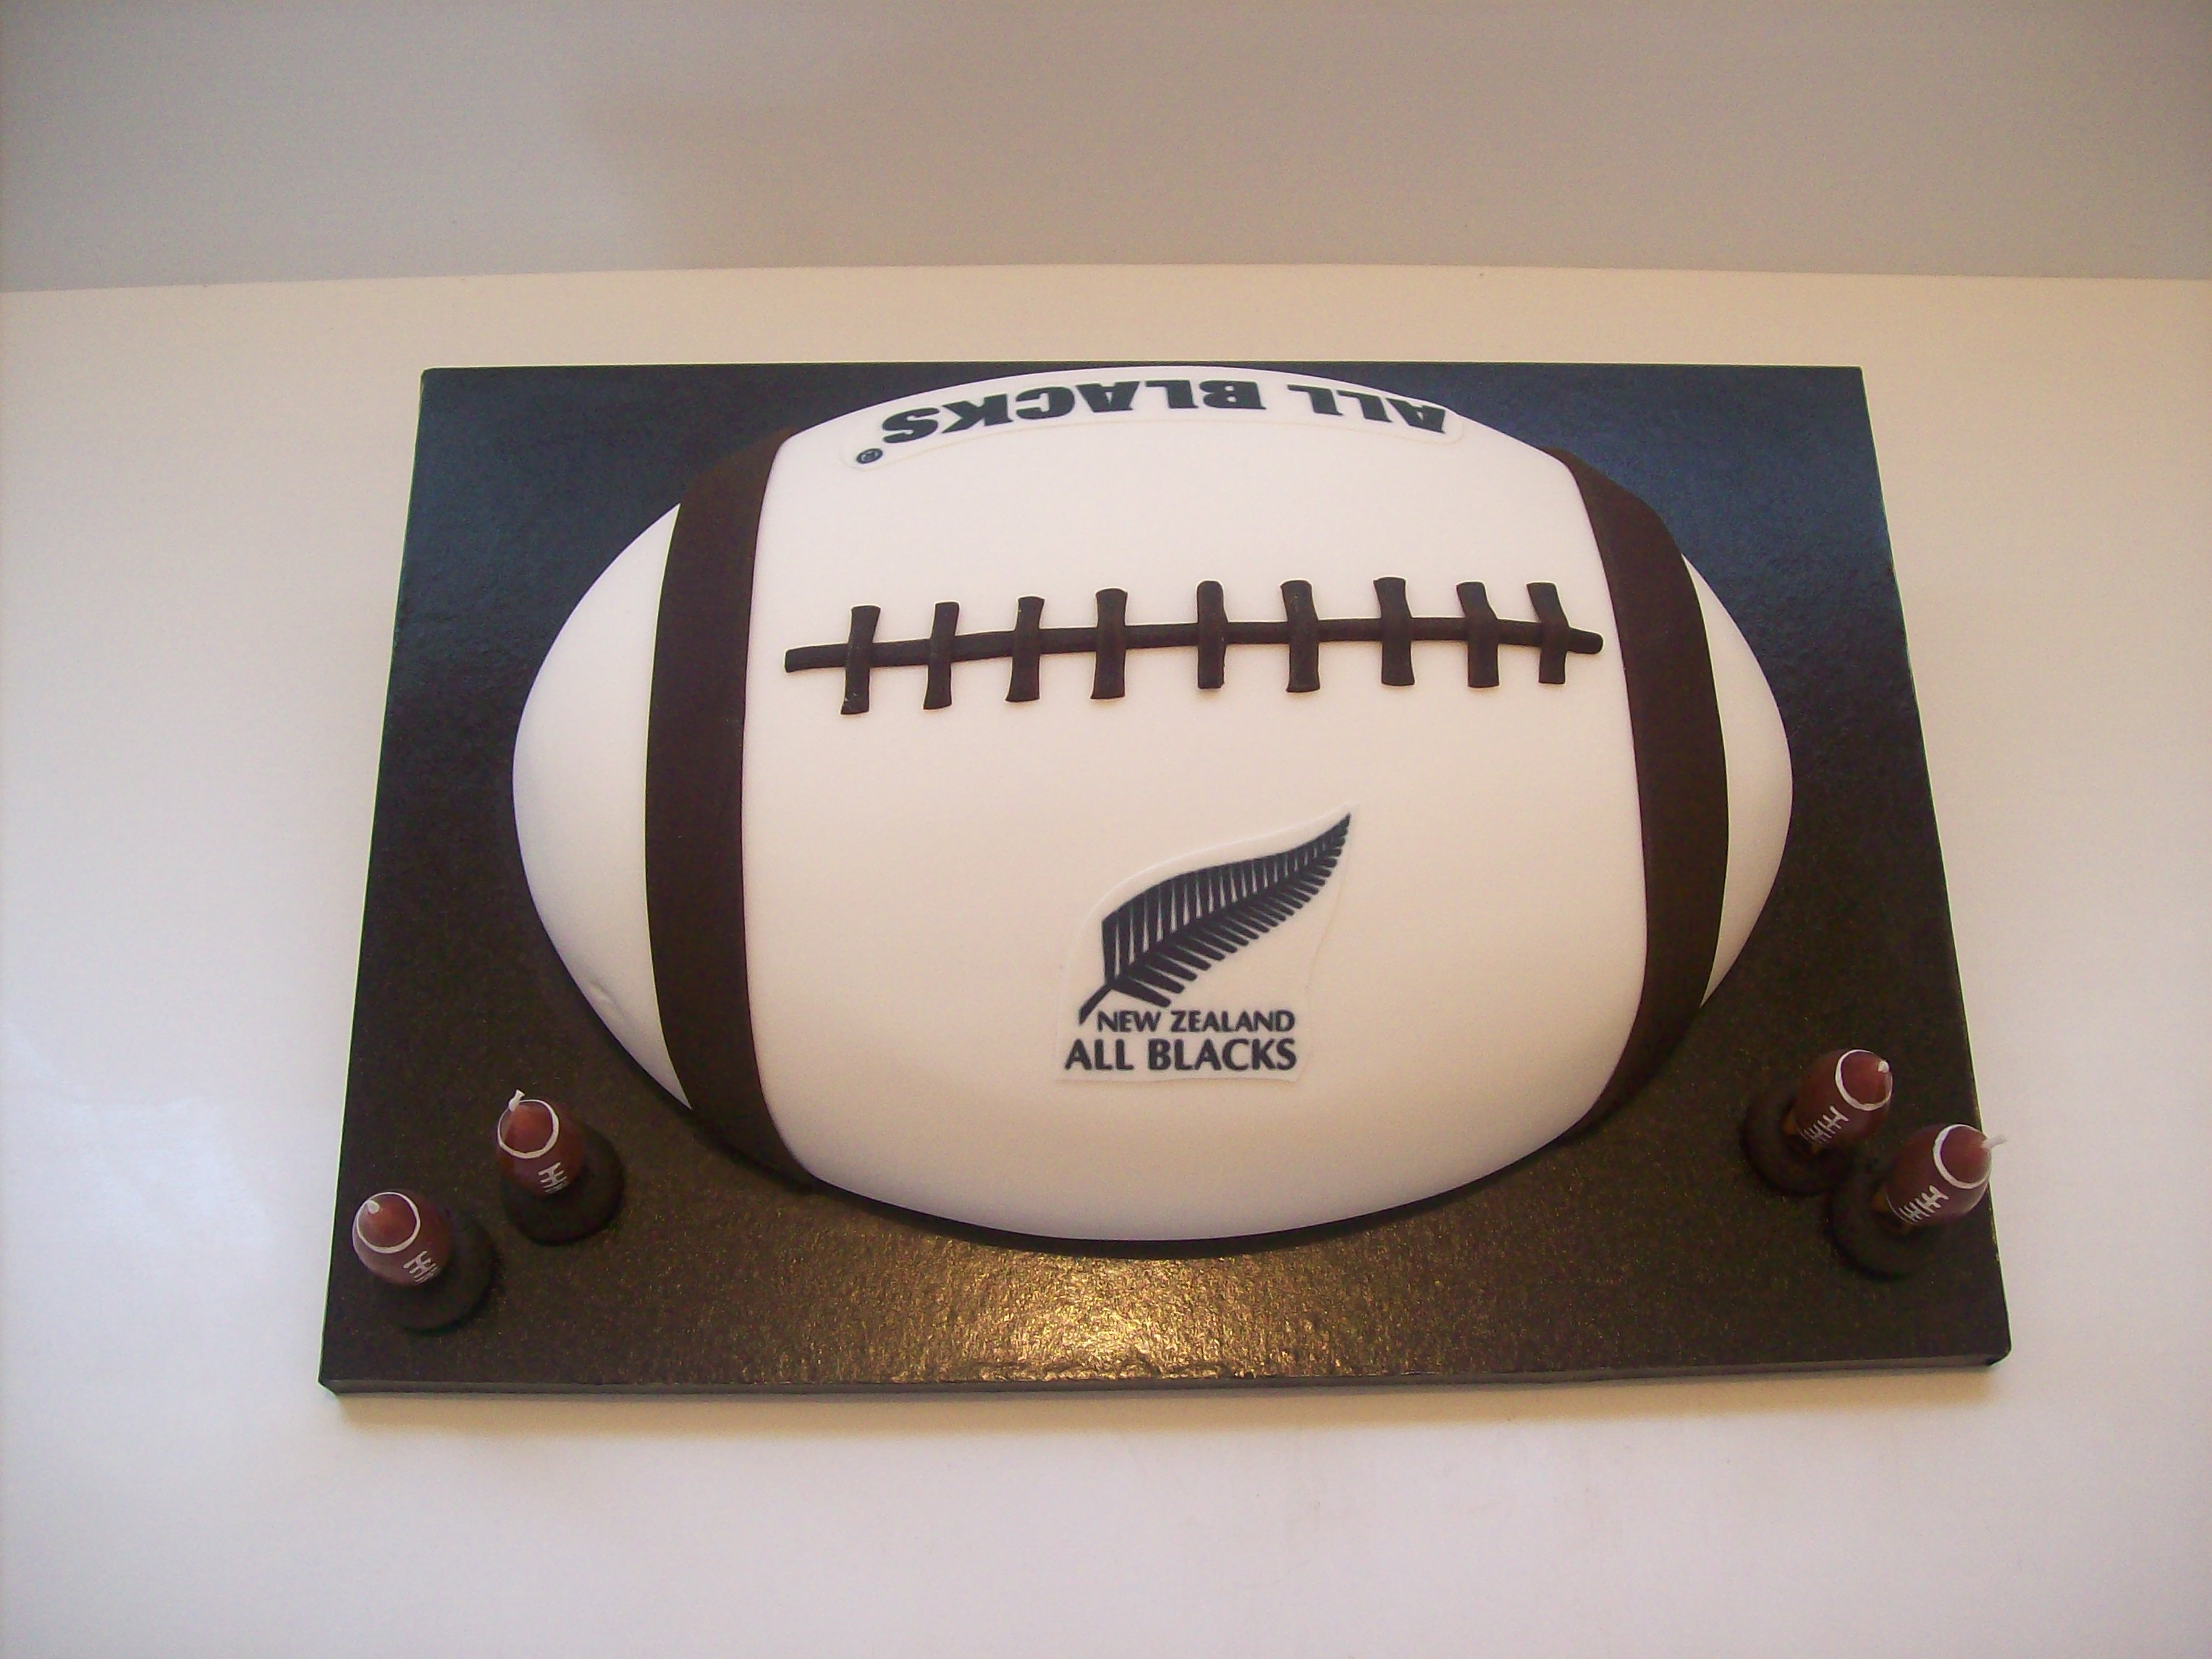 All Blacks Cake 149 Temptation Cakes Temptation Cakes